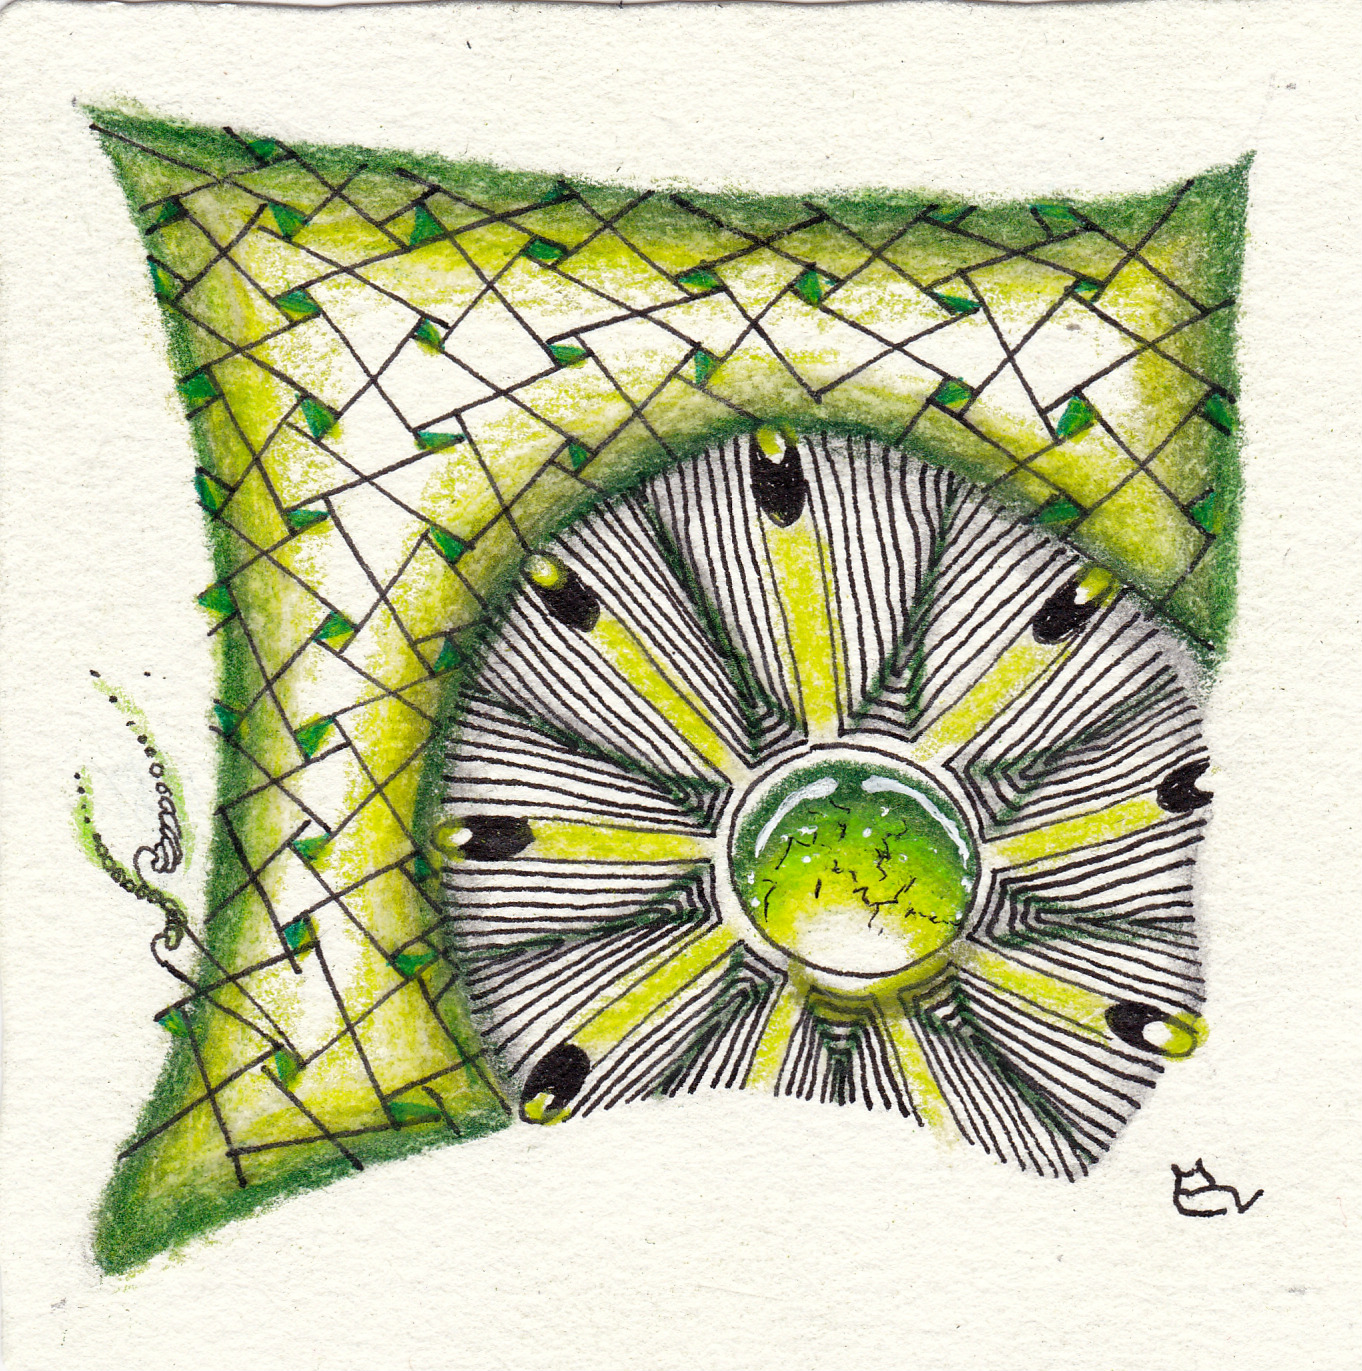 Zentangle inspired art with the pattern Eaxy designed by Nadine Roller, drawn by Ela Rieger